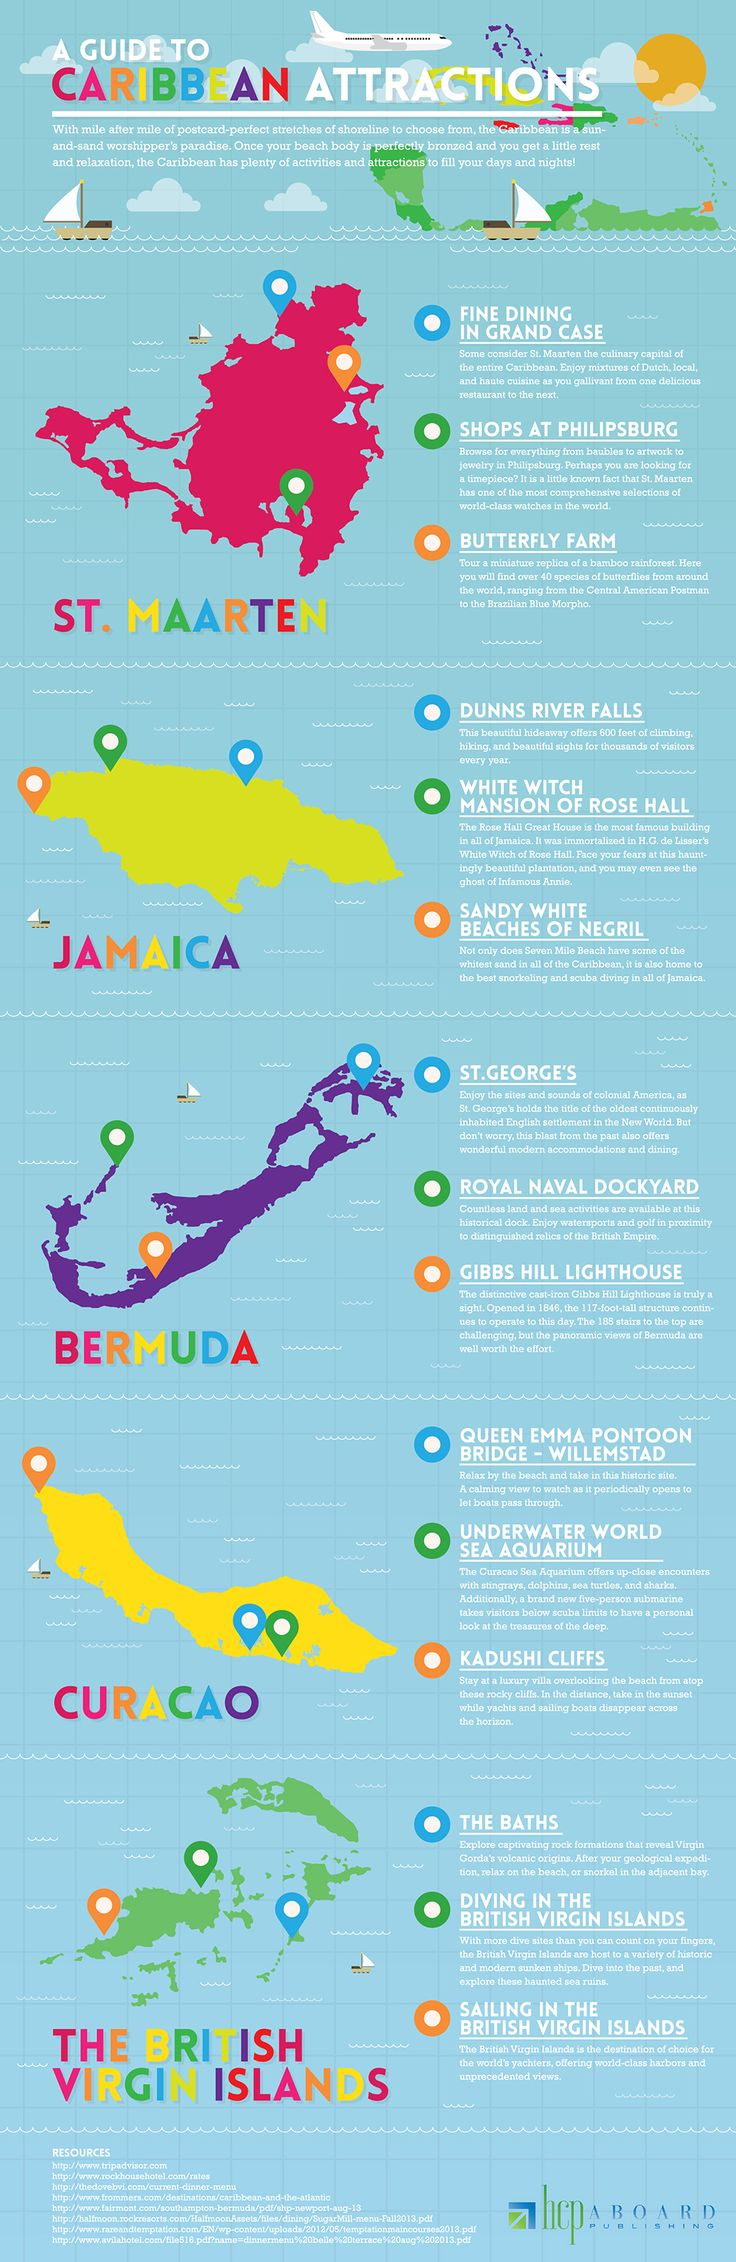 hong kong chrome hearts A Guide To Caribbean Attractions #Caribbean #Travel #infographics repinned by @Piktochart Travel